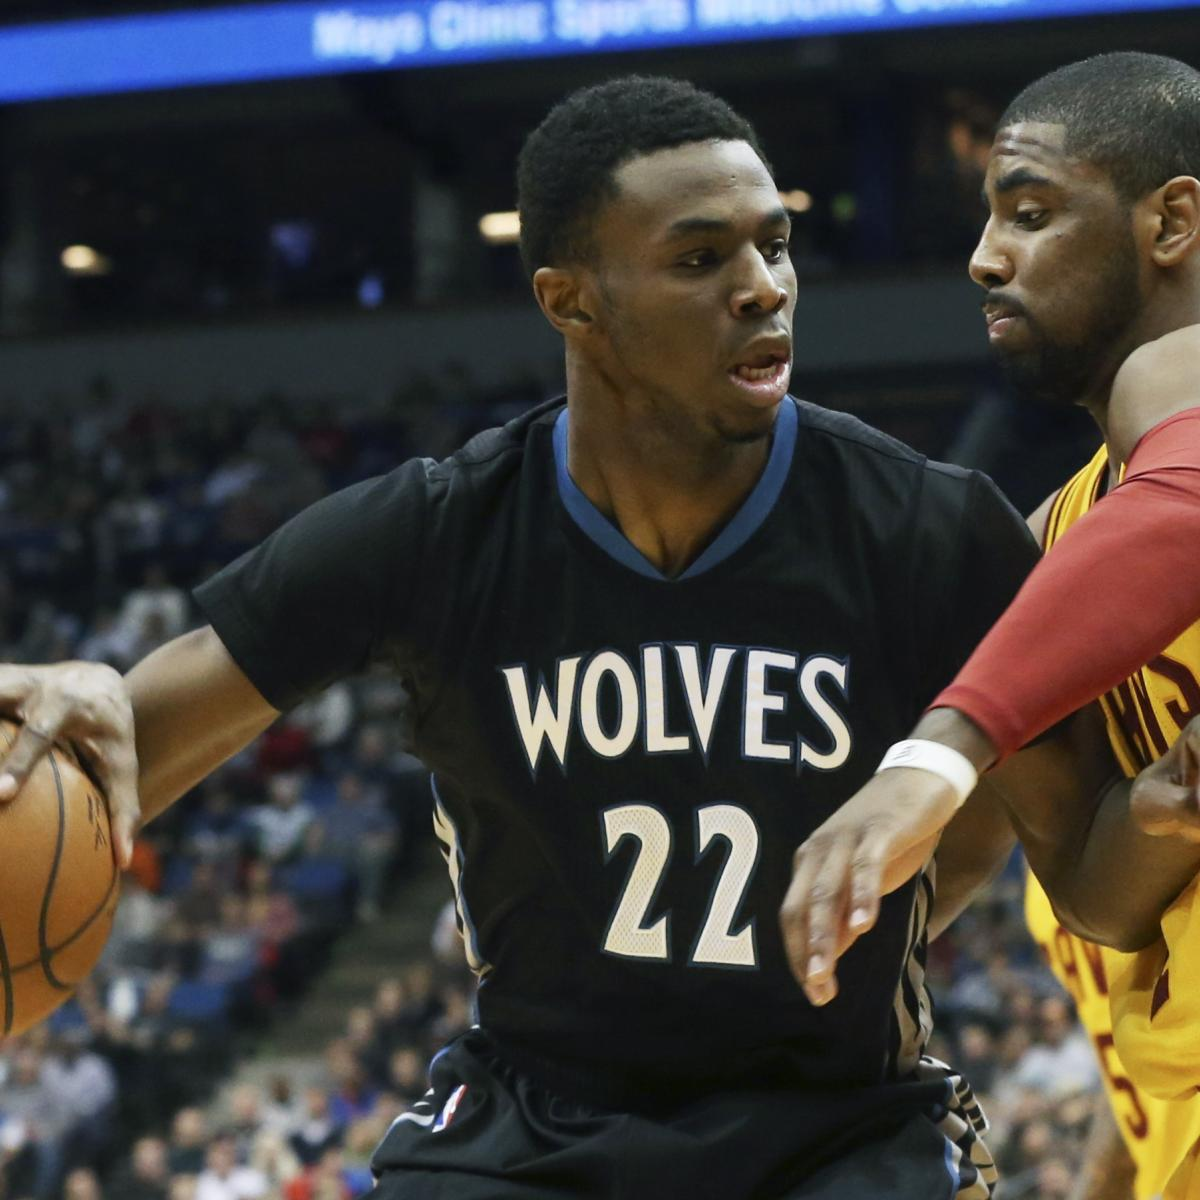 Kevinbelieberz: Andrew Wiggins Sealing Up Rookie Of The Year Race And